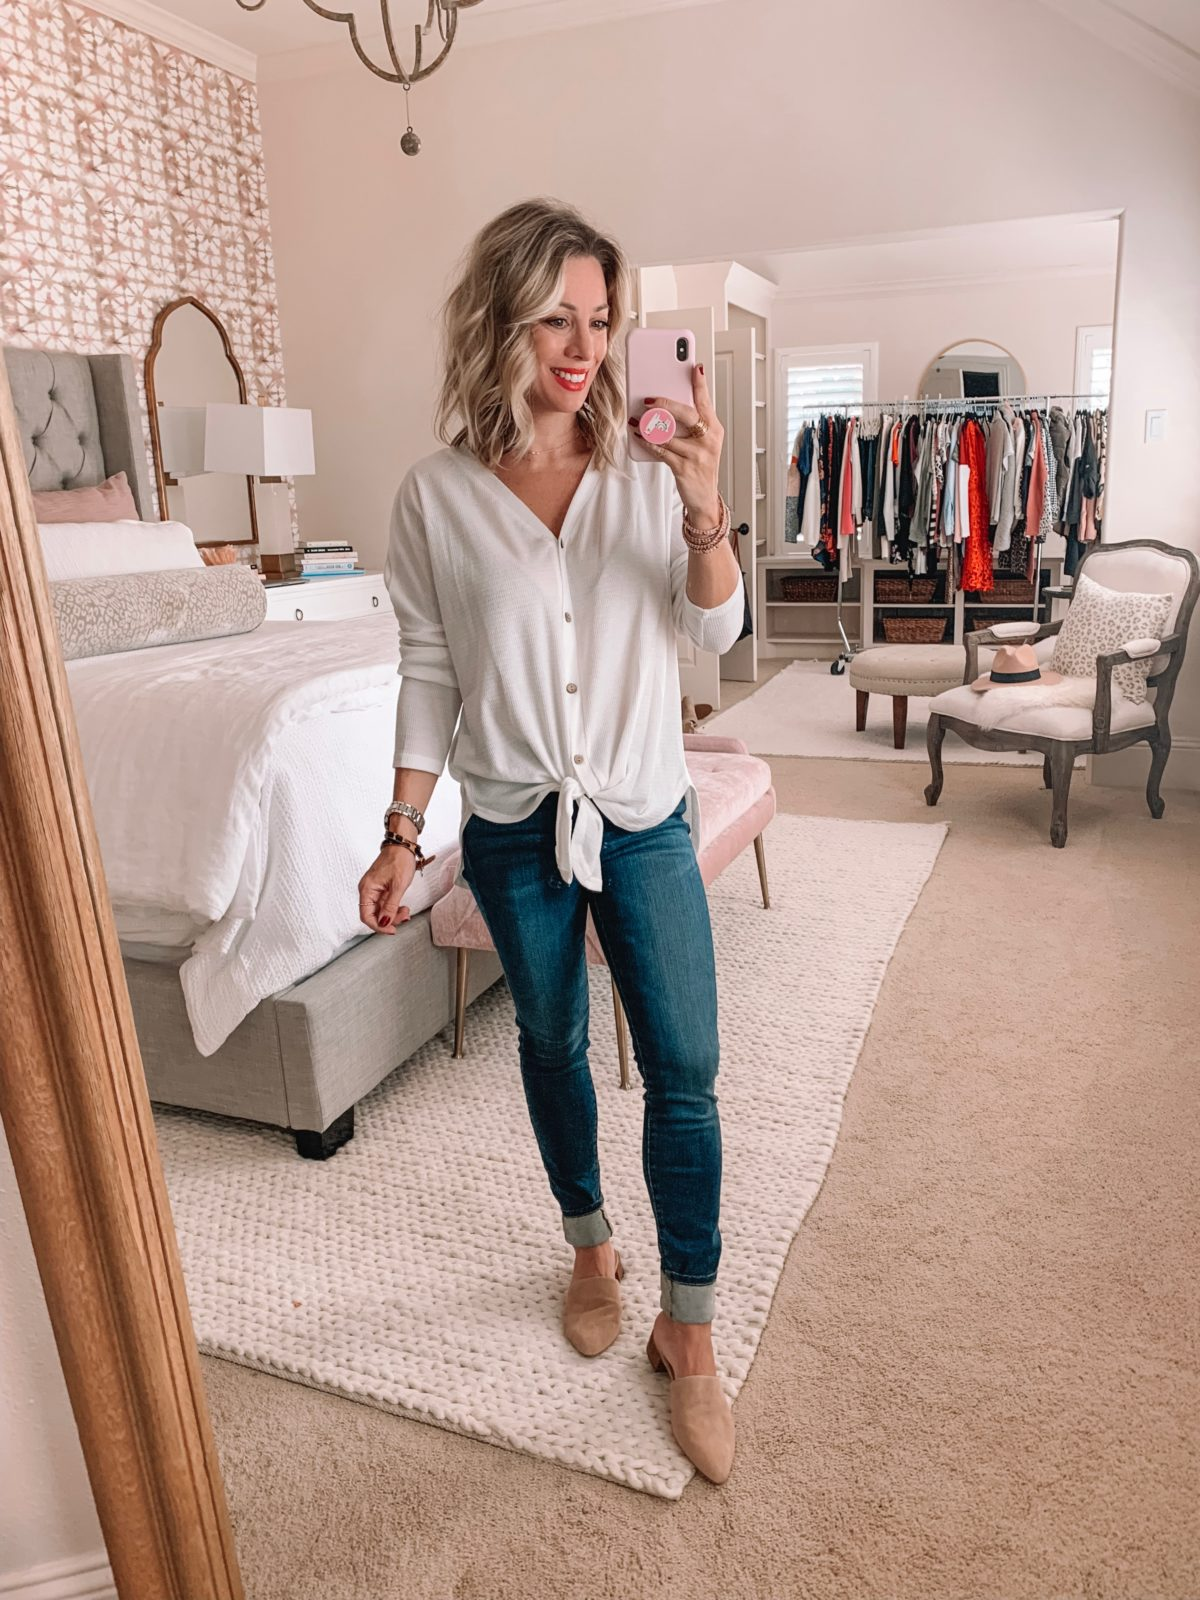 Amazon Prime Fashion- Tie Front Top and Jeans